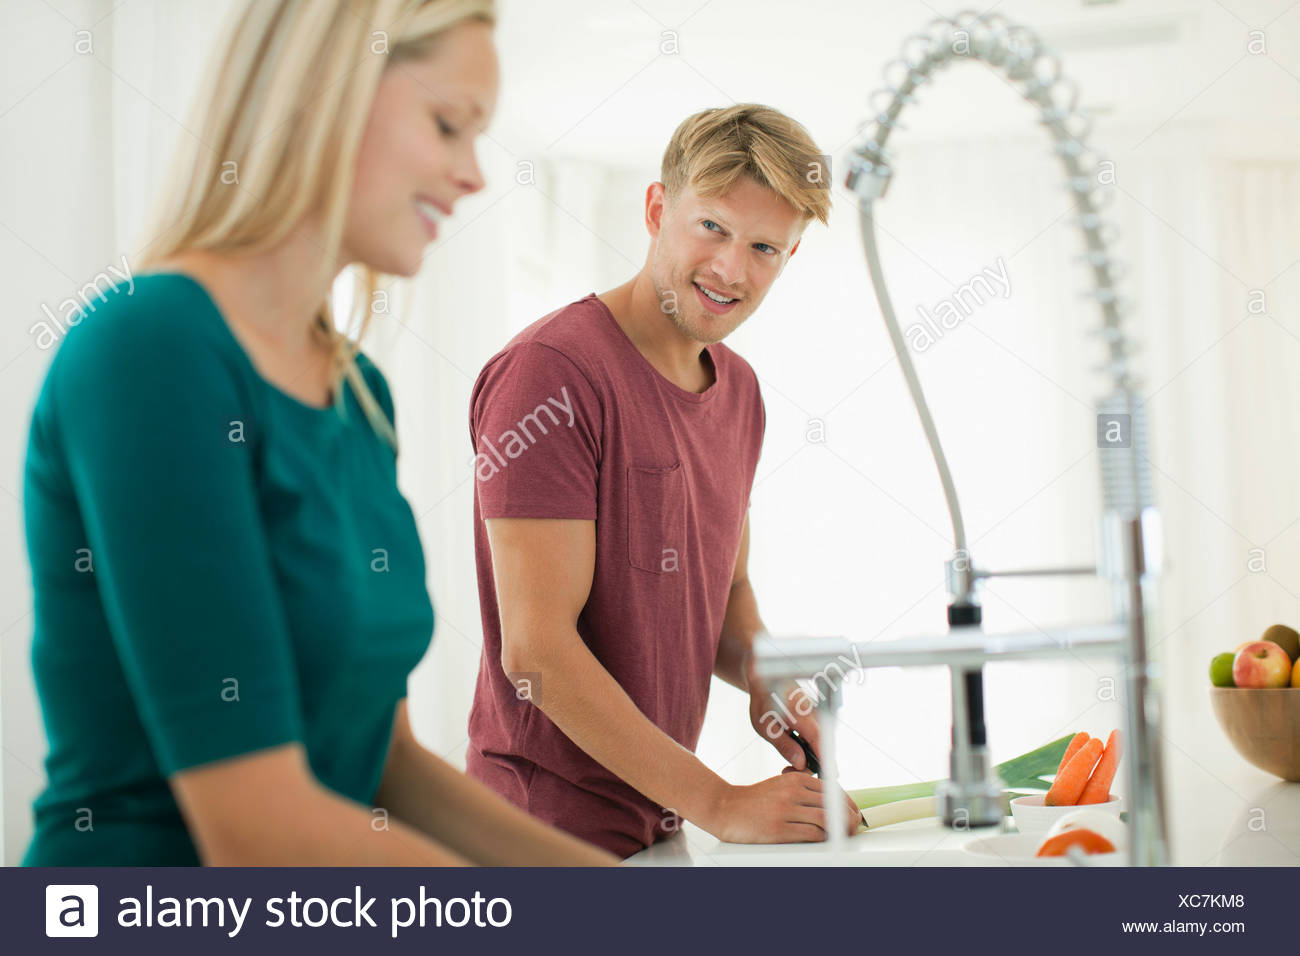 Couple working together in kitchen - Stock Image